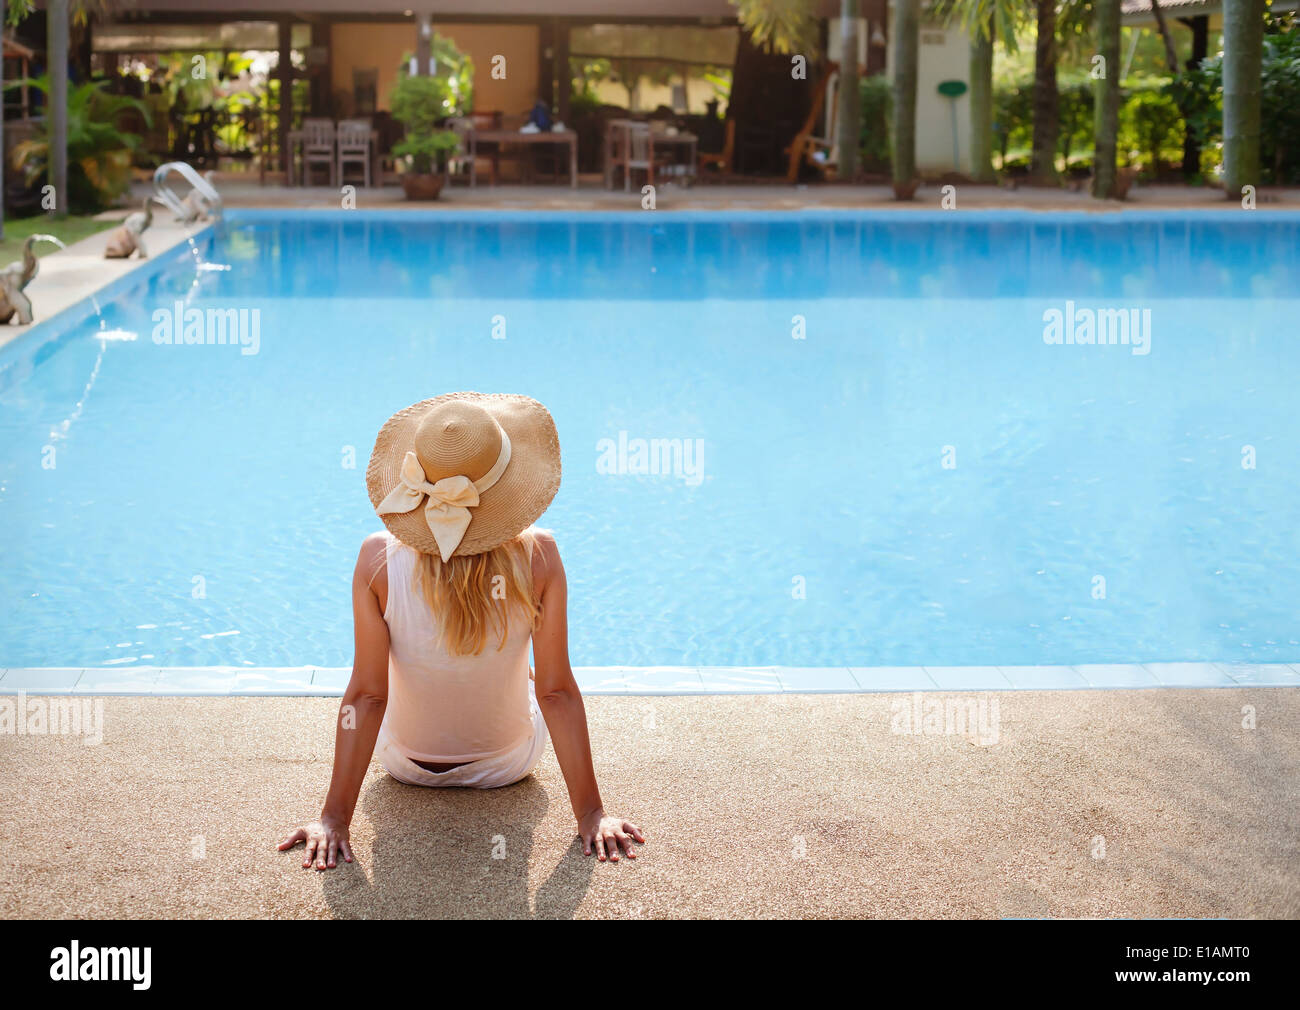 enjoy vacations in luxury hotel with swimming pool - Stock Image